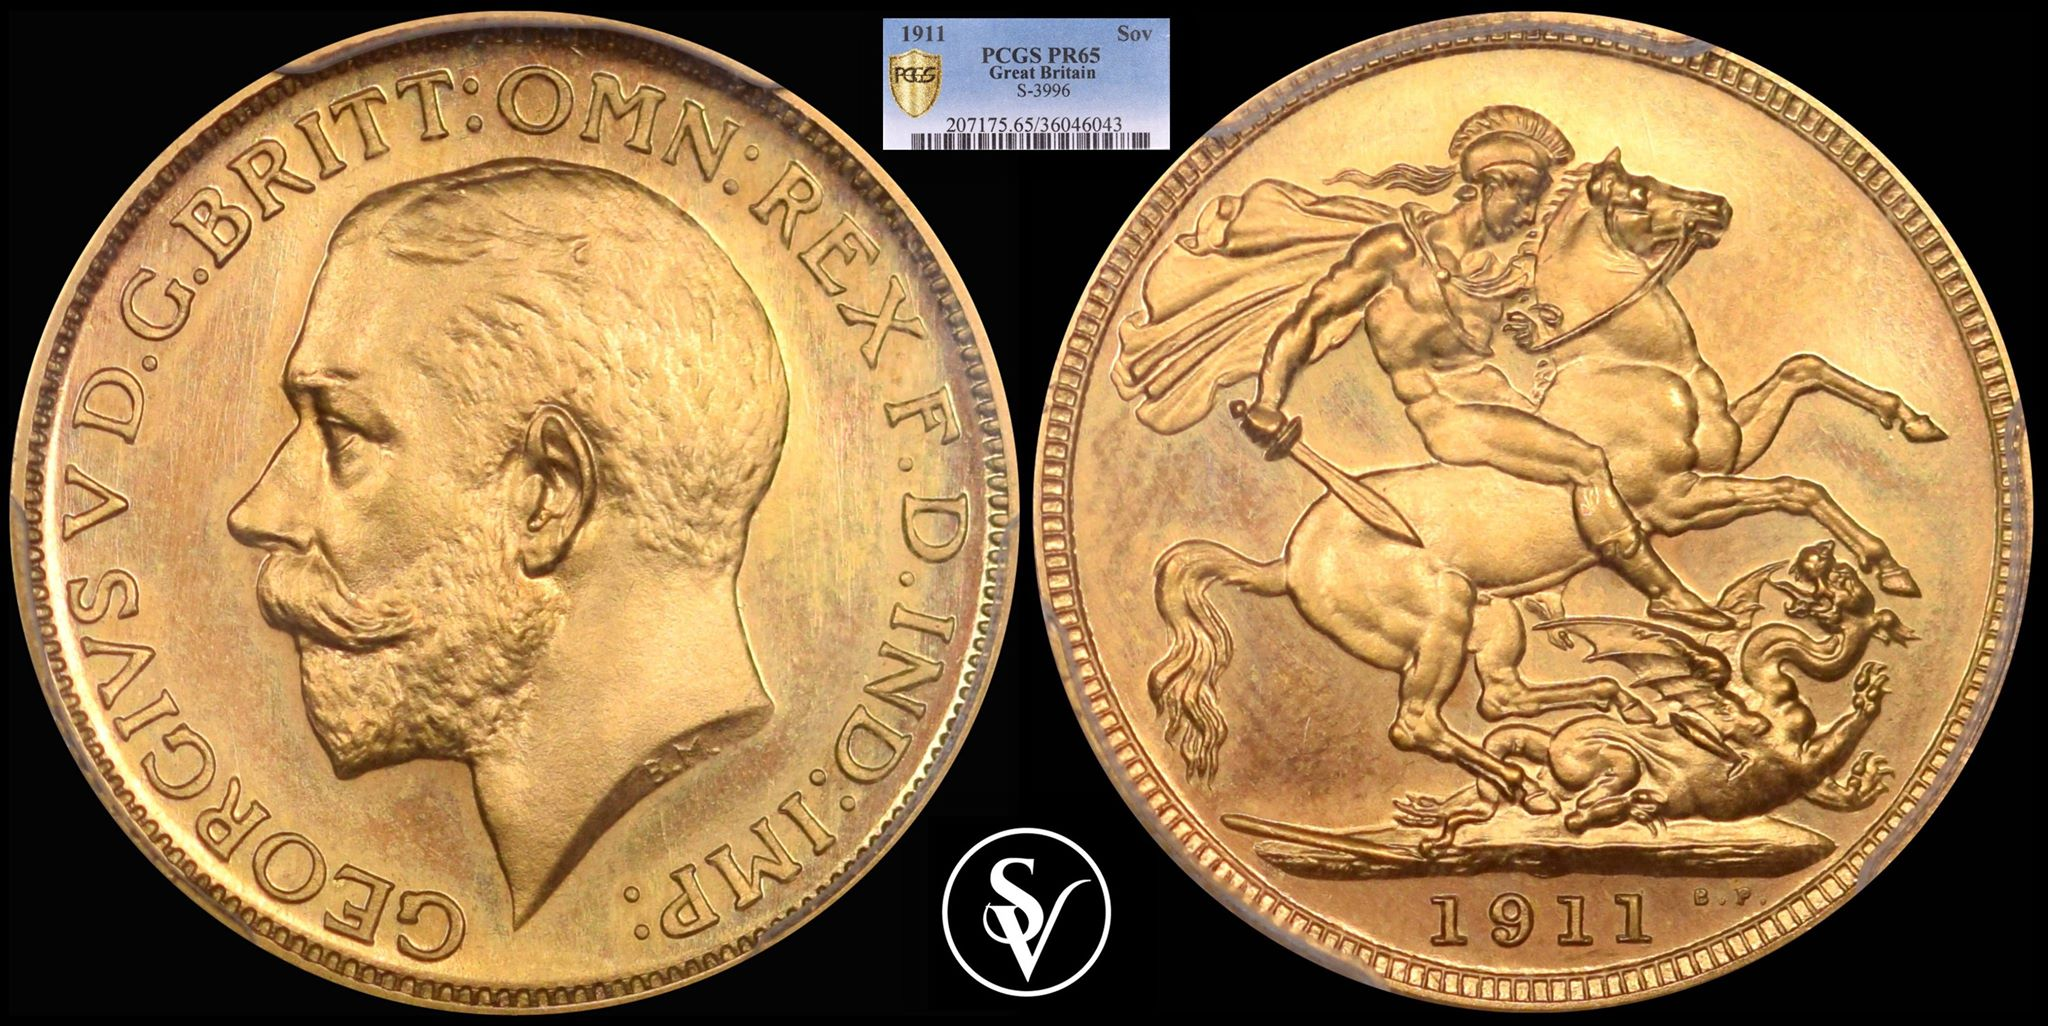 1911 proof sovereign